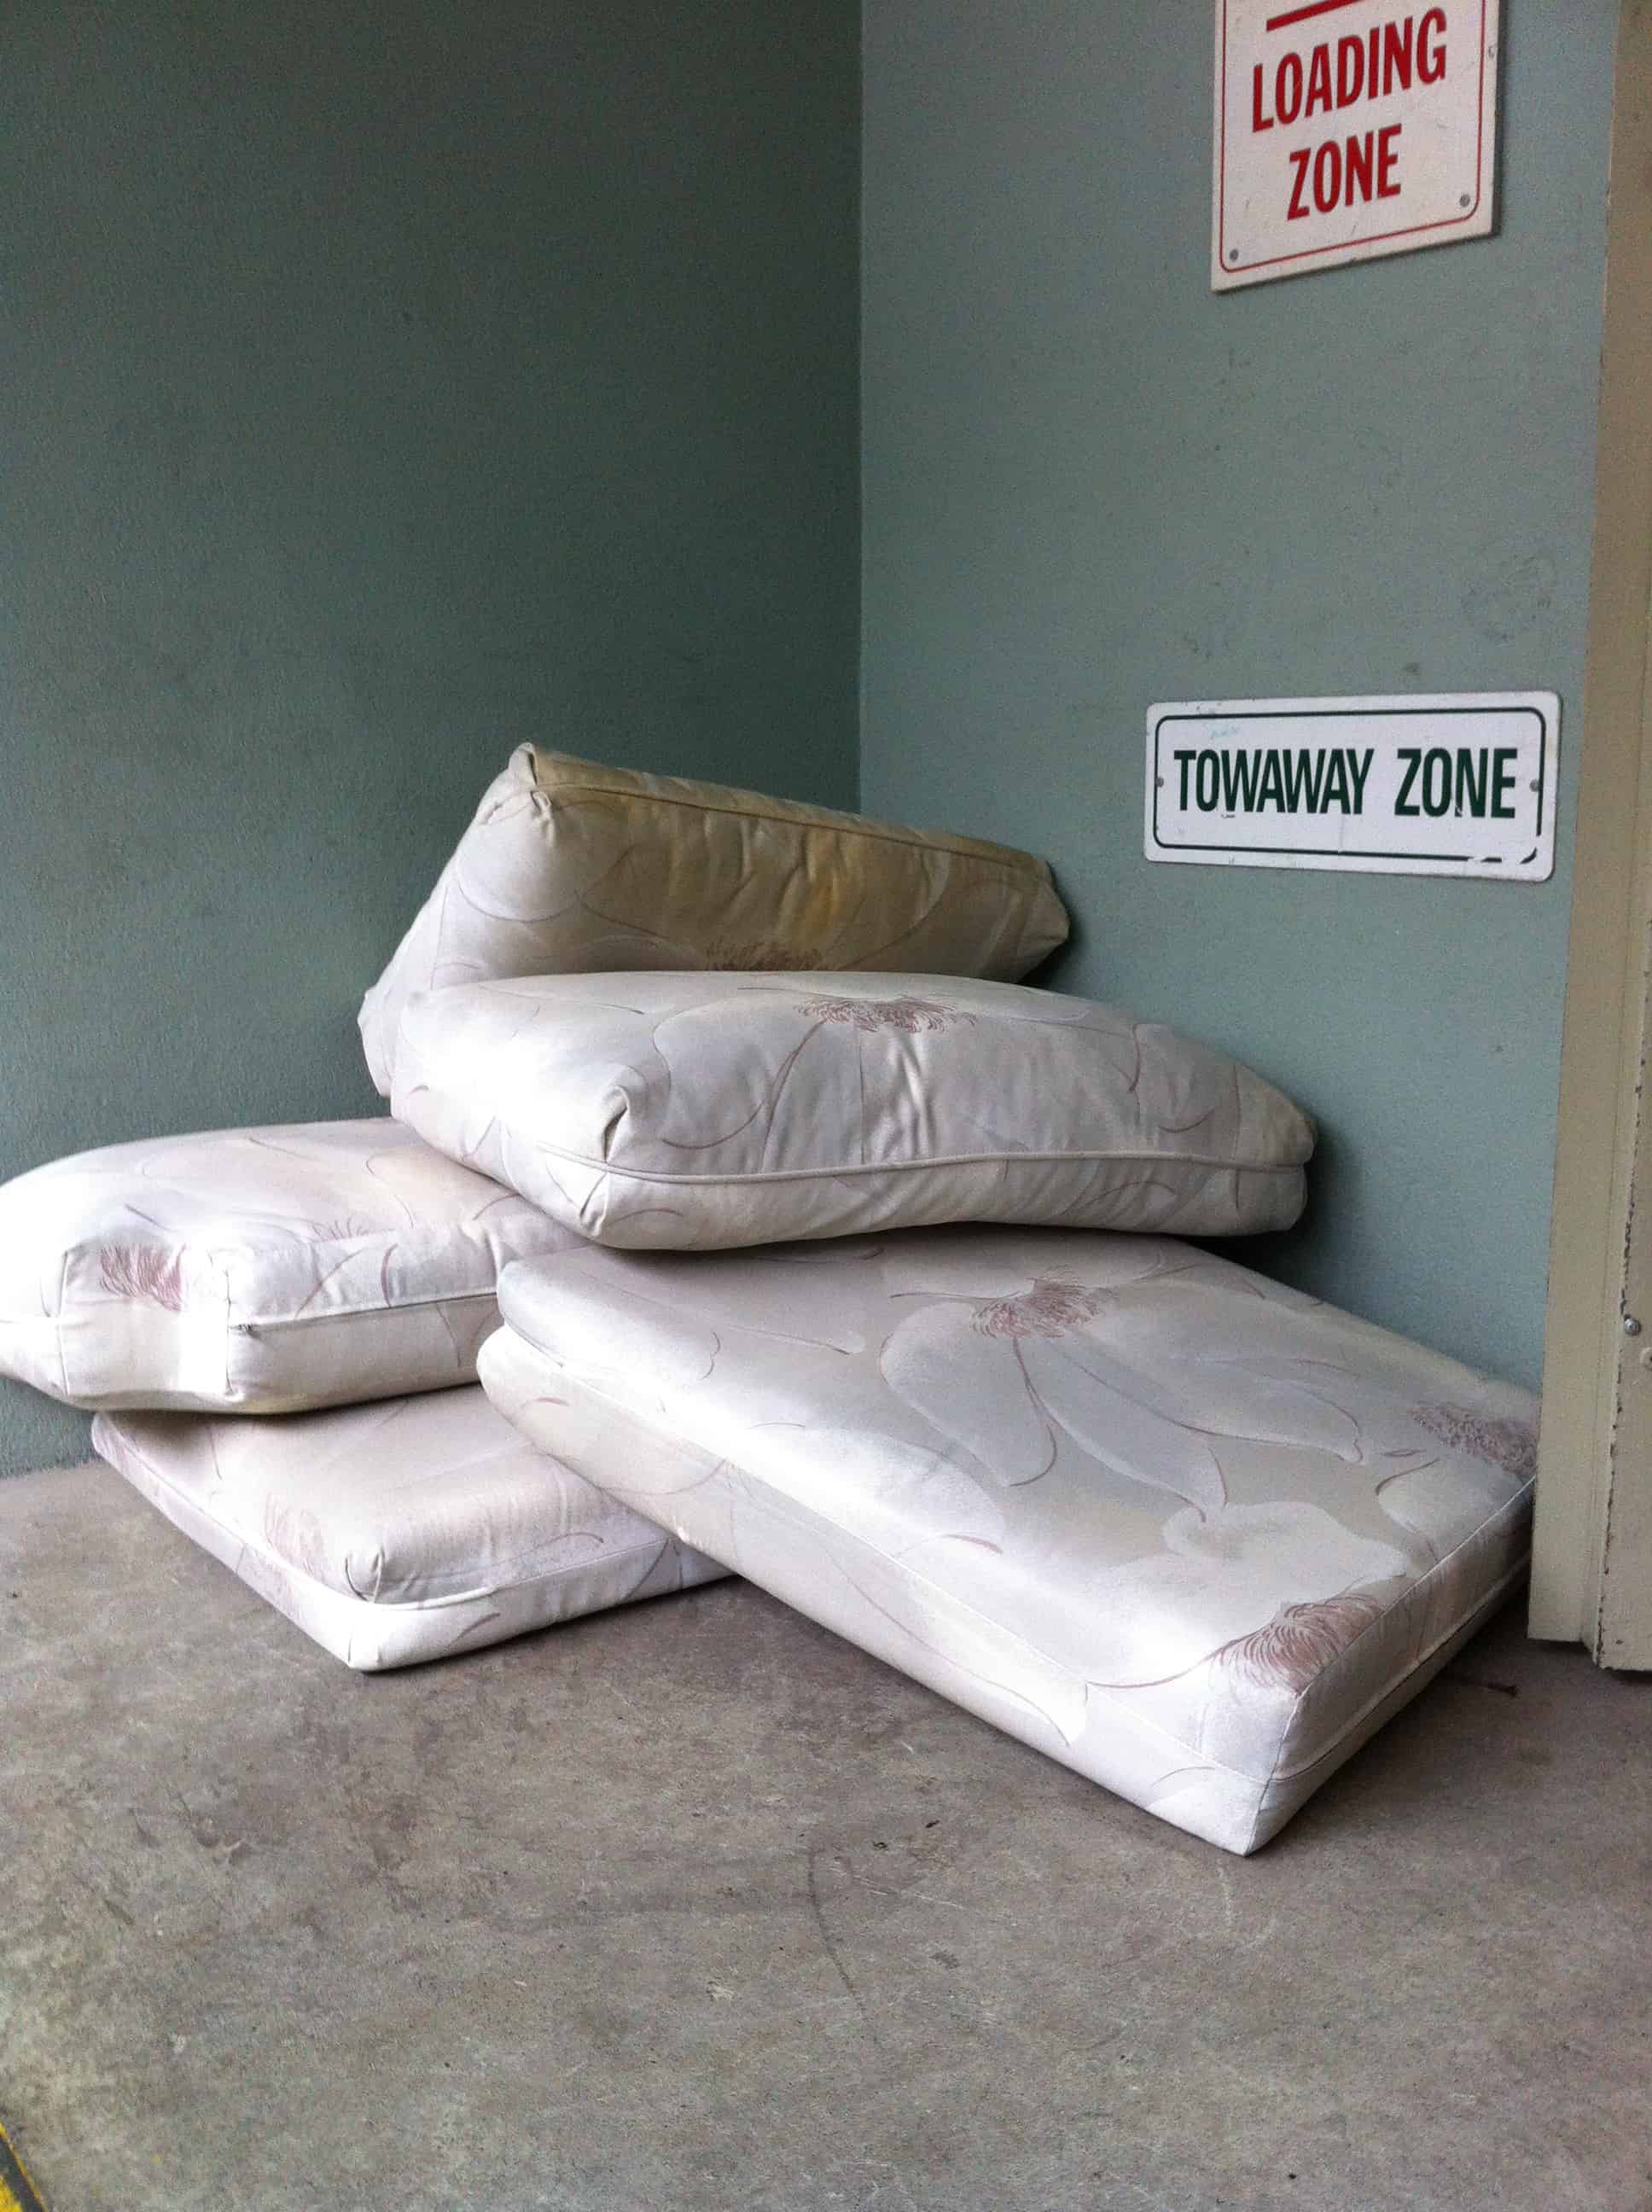 mattress boxspring couch desk sofa bed some yard waste green waste table kitchen cabinet. Black Bedroom Furniture Sets. Home Design Ideas